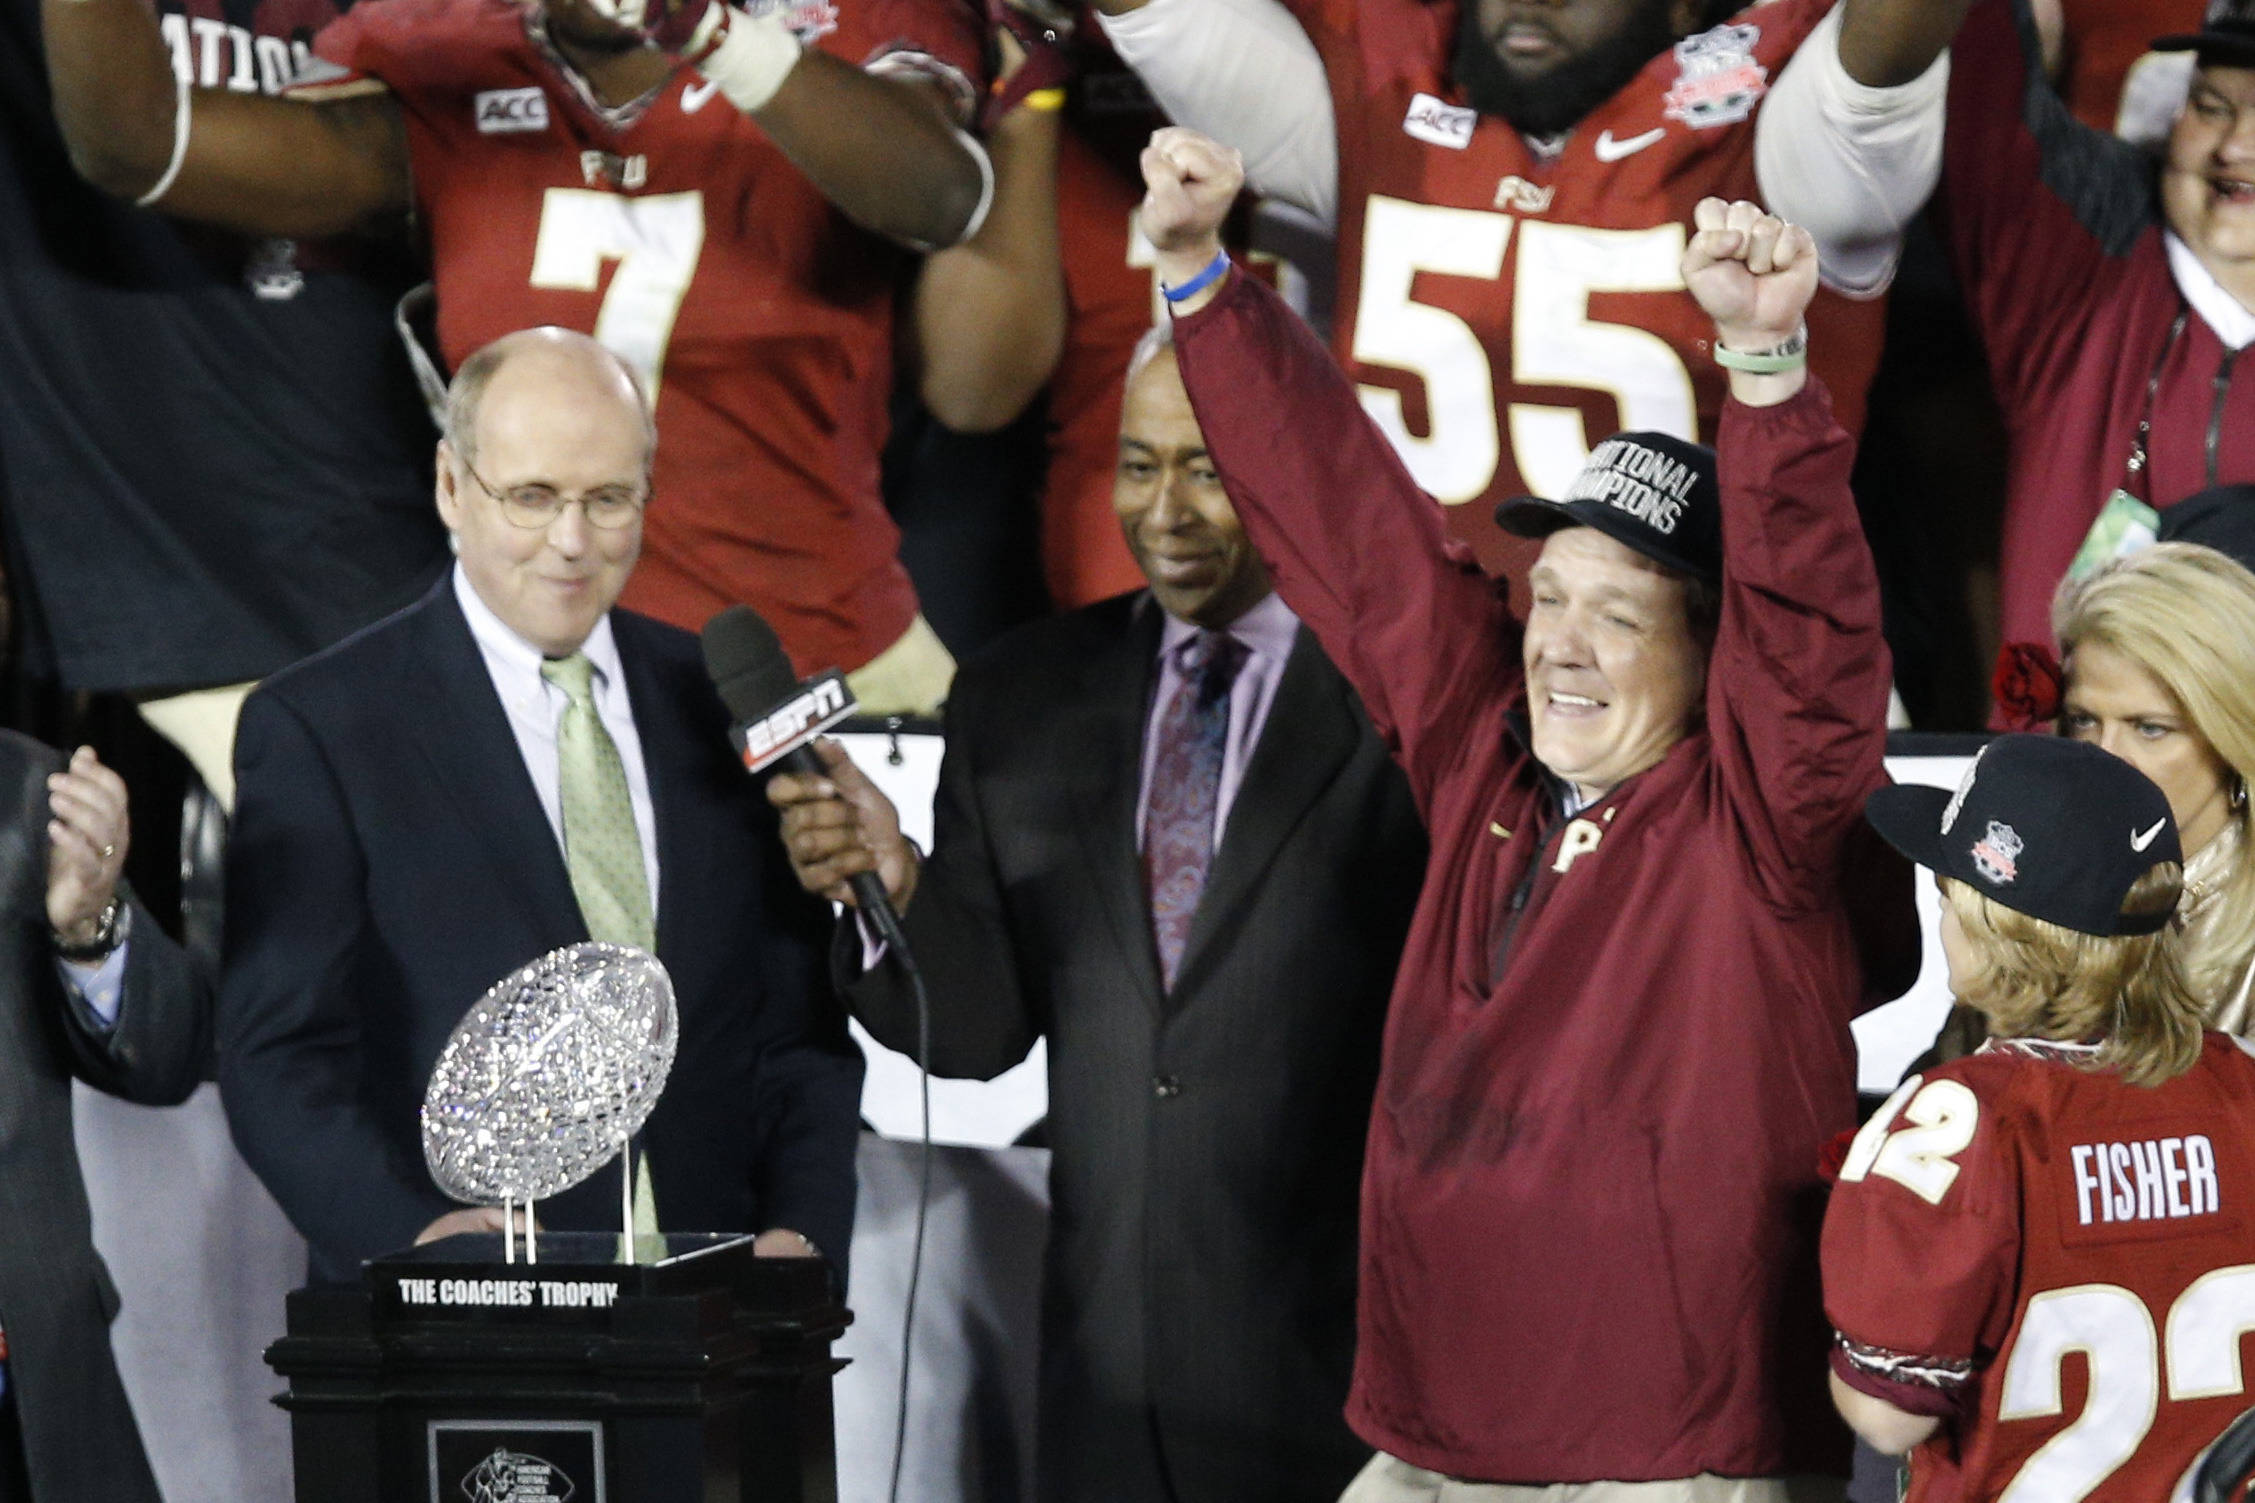 Jan 6, 2014; Pasadena, CA, USA; Florida State Seminoles head coach Jimbo Fisher celebrates after defeating Auburn Tigers 34-31 in the 2014 BCS National Championship game at the Rose Bowl.  Mandatory Credit: Kelvin Kuo-USA TODAY Sports